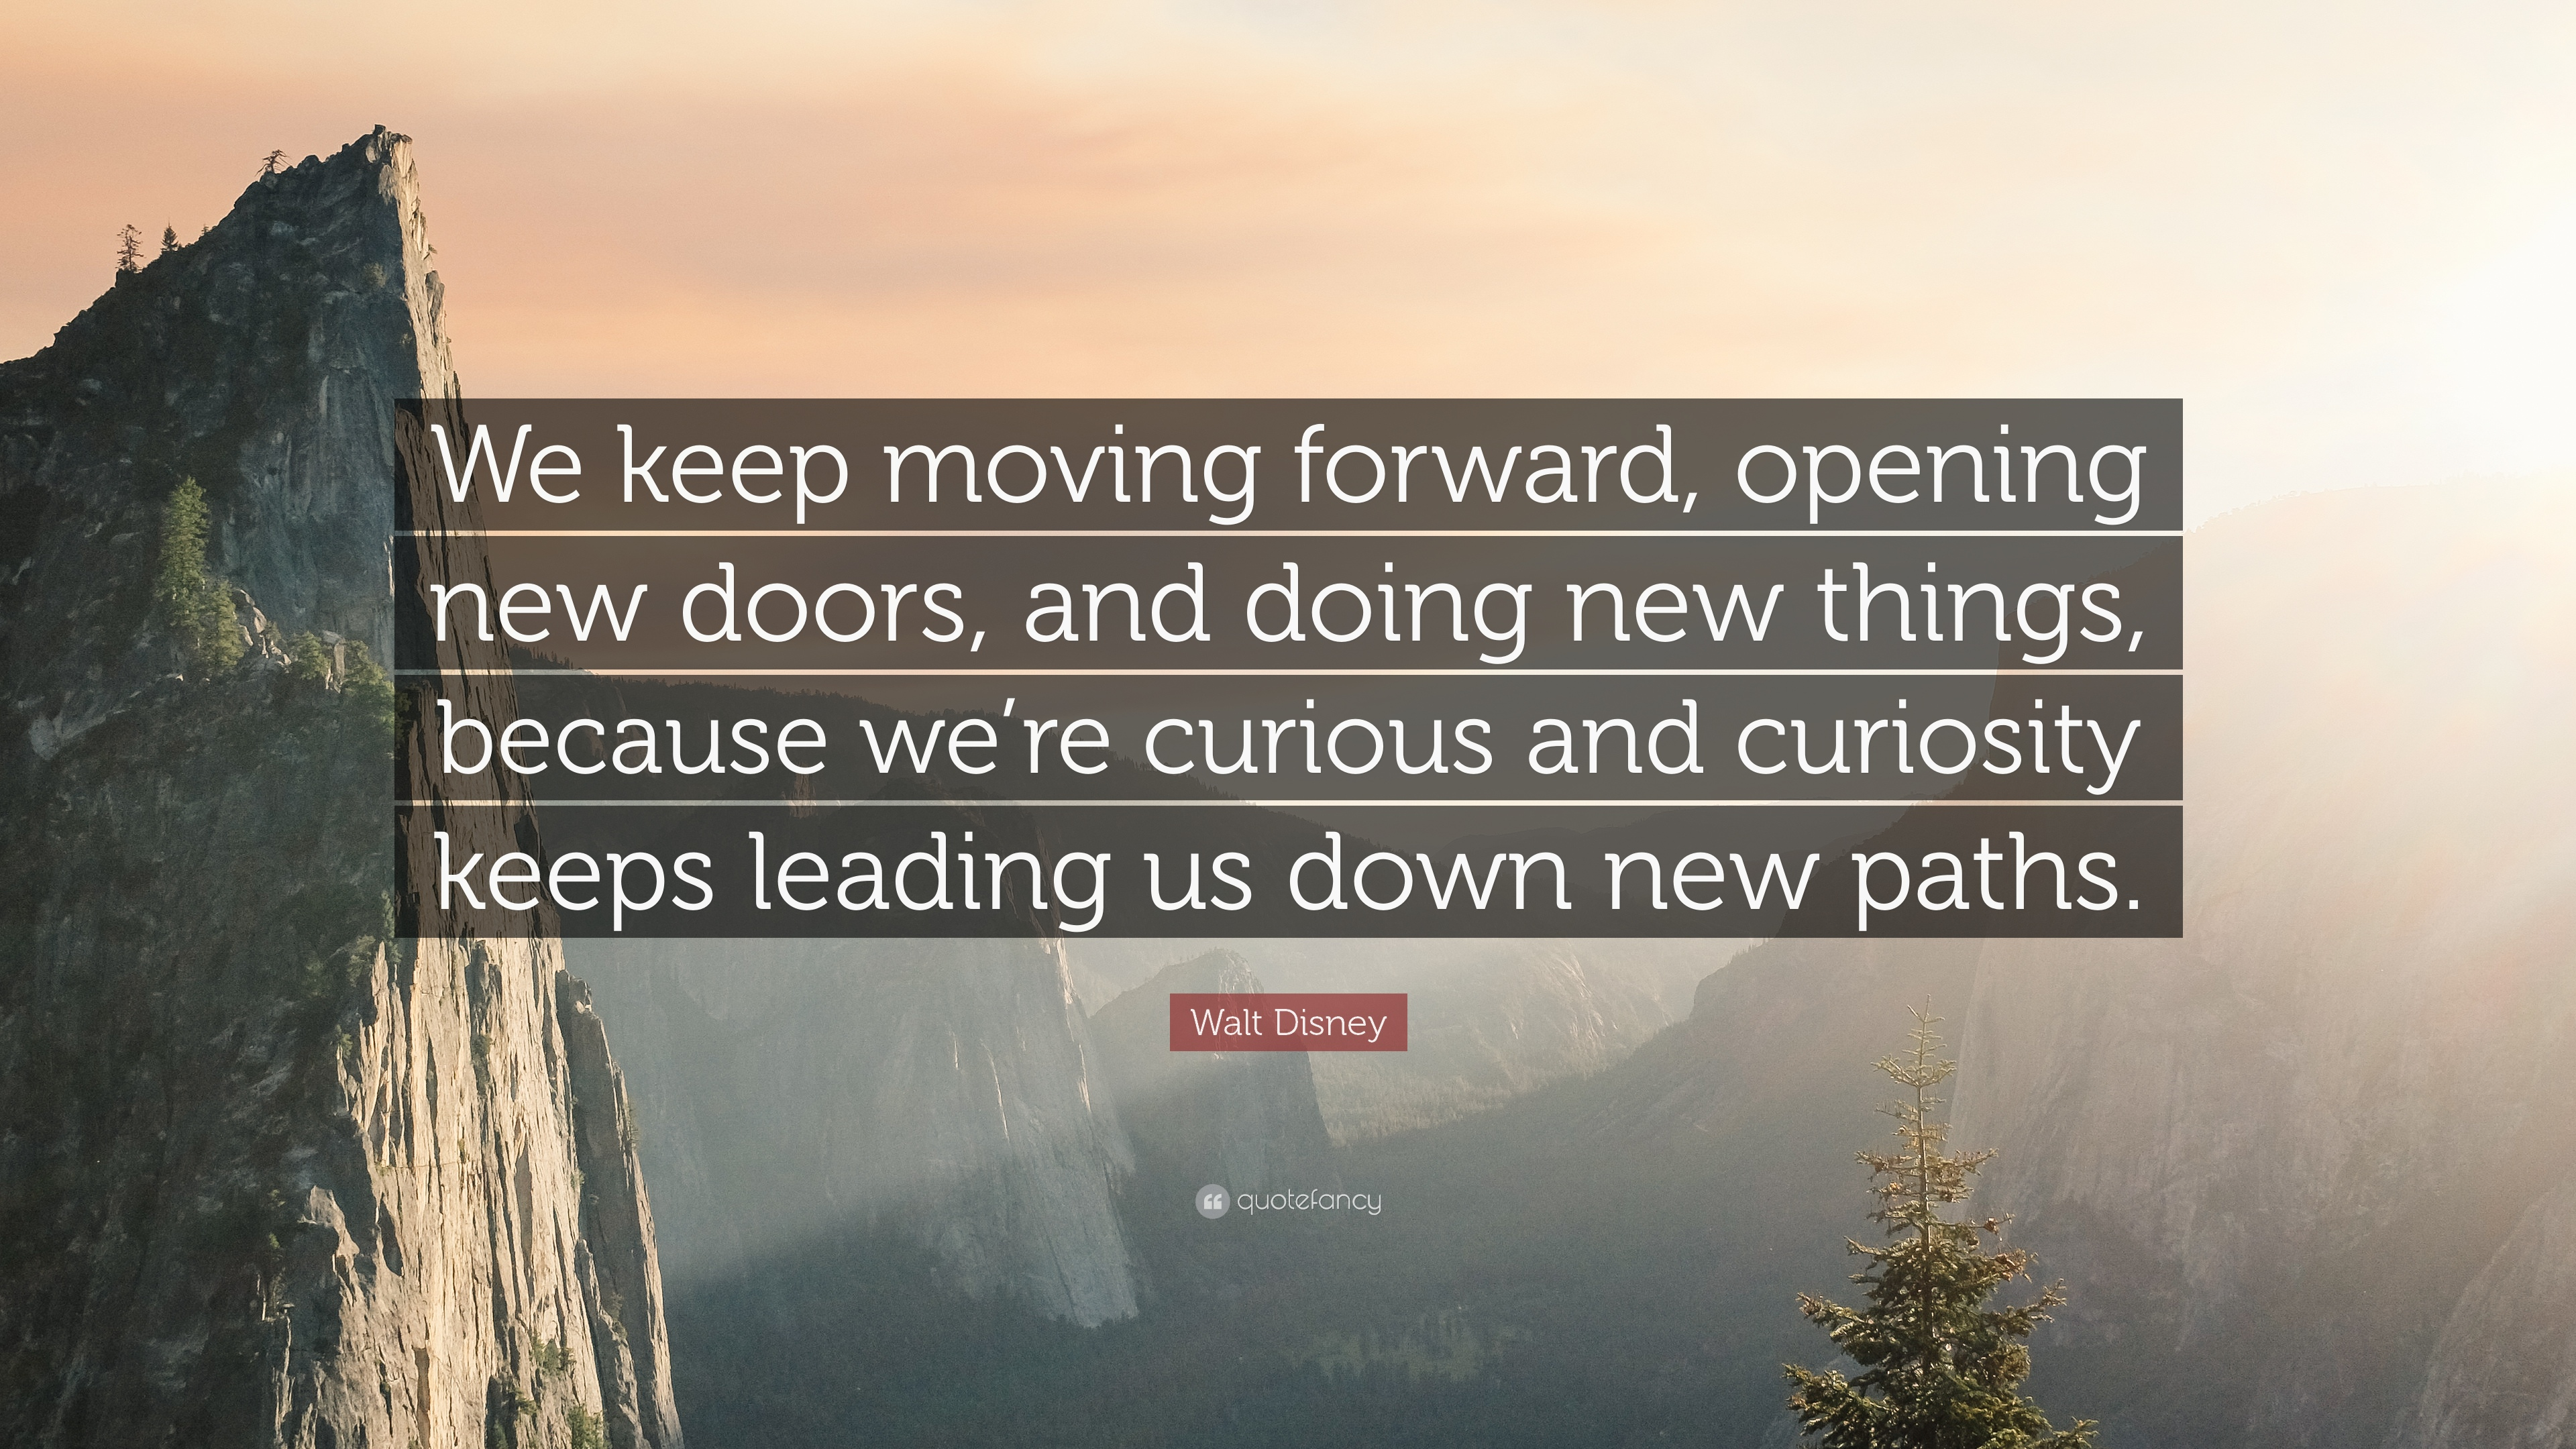 walt disney quotes keep moving forward - photo #29